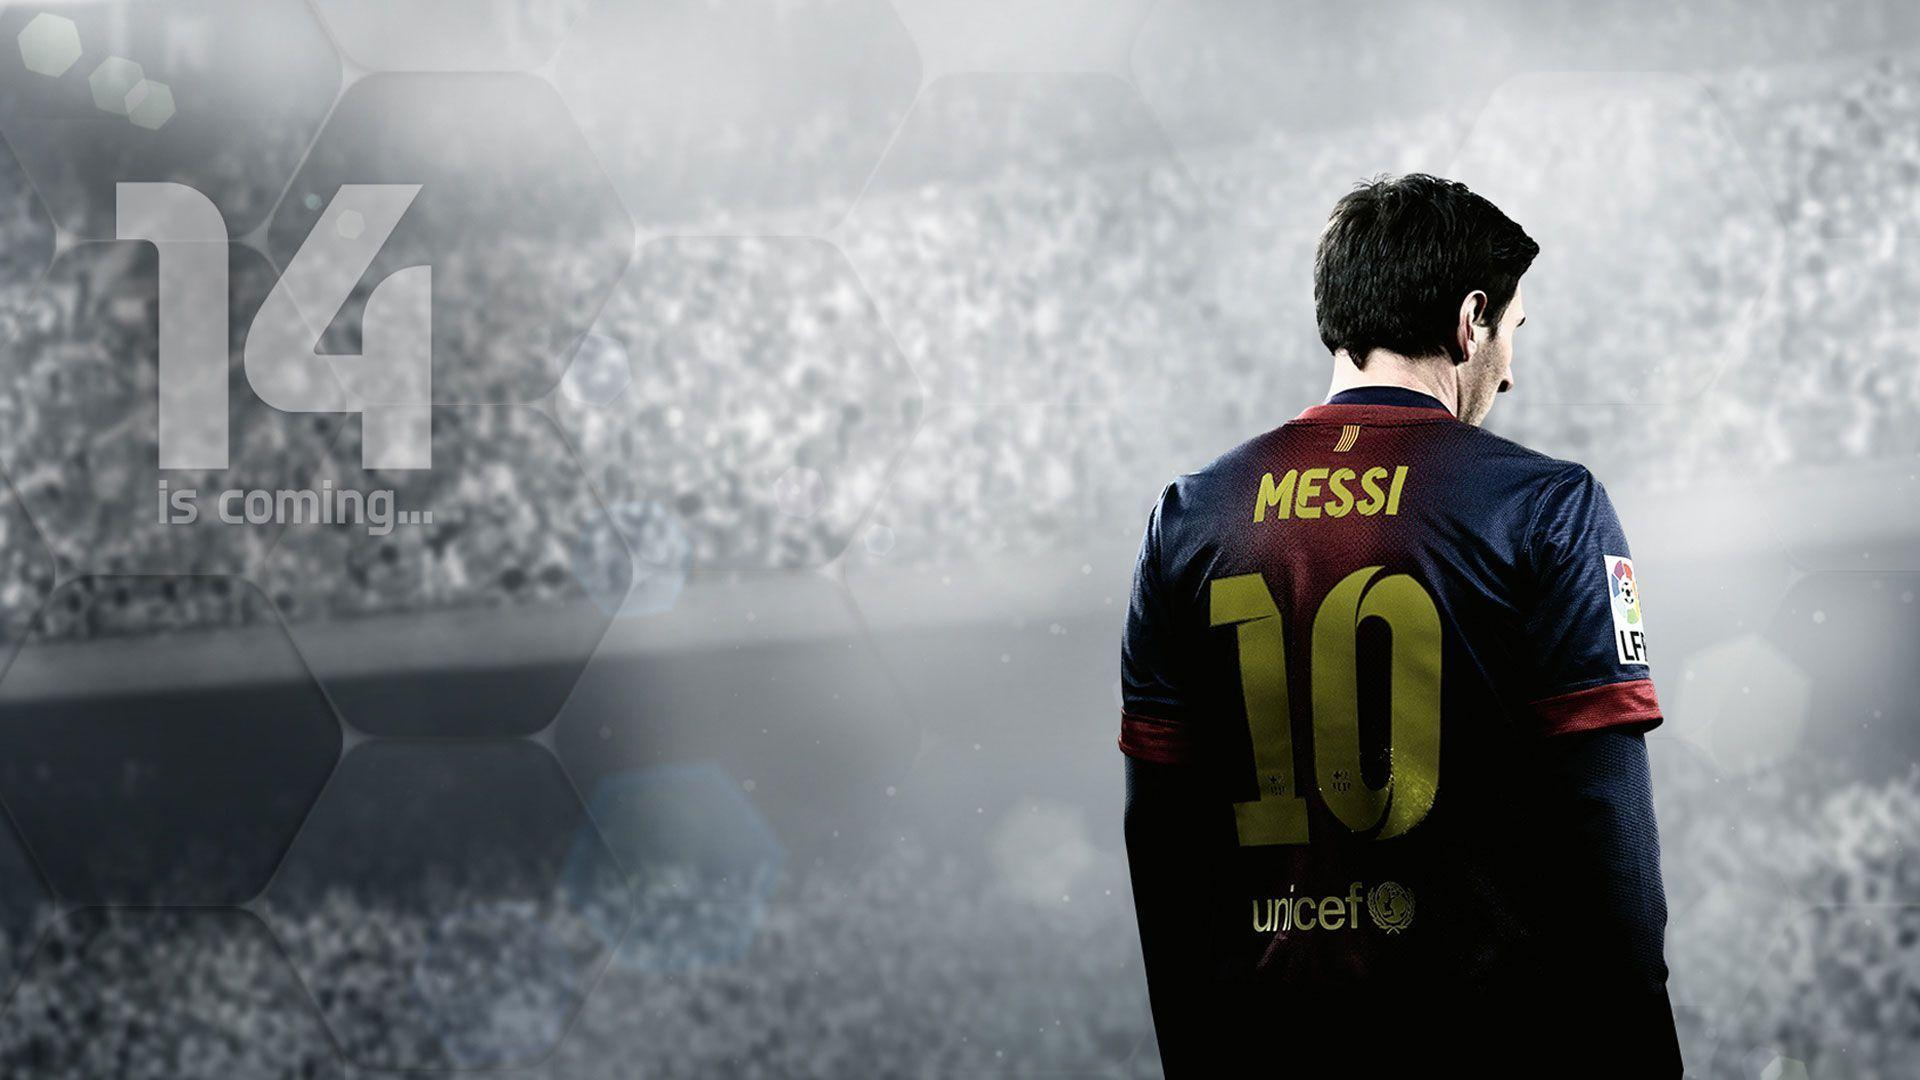 FIFA 14 HD Wallpapers: Download Stunning HD Wallpapers | Trend in ...